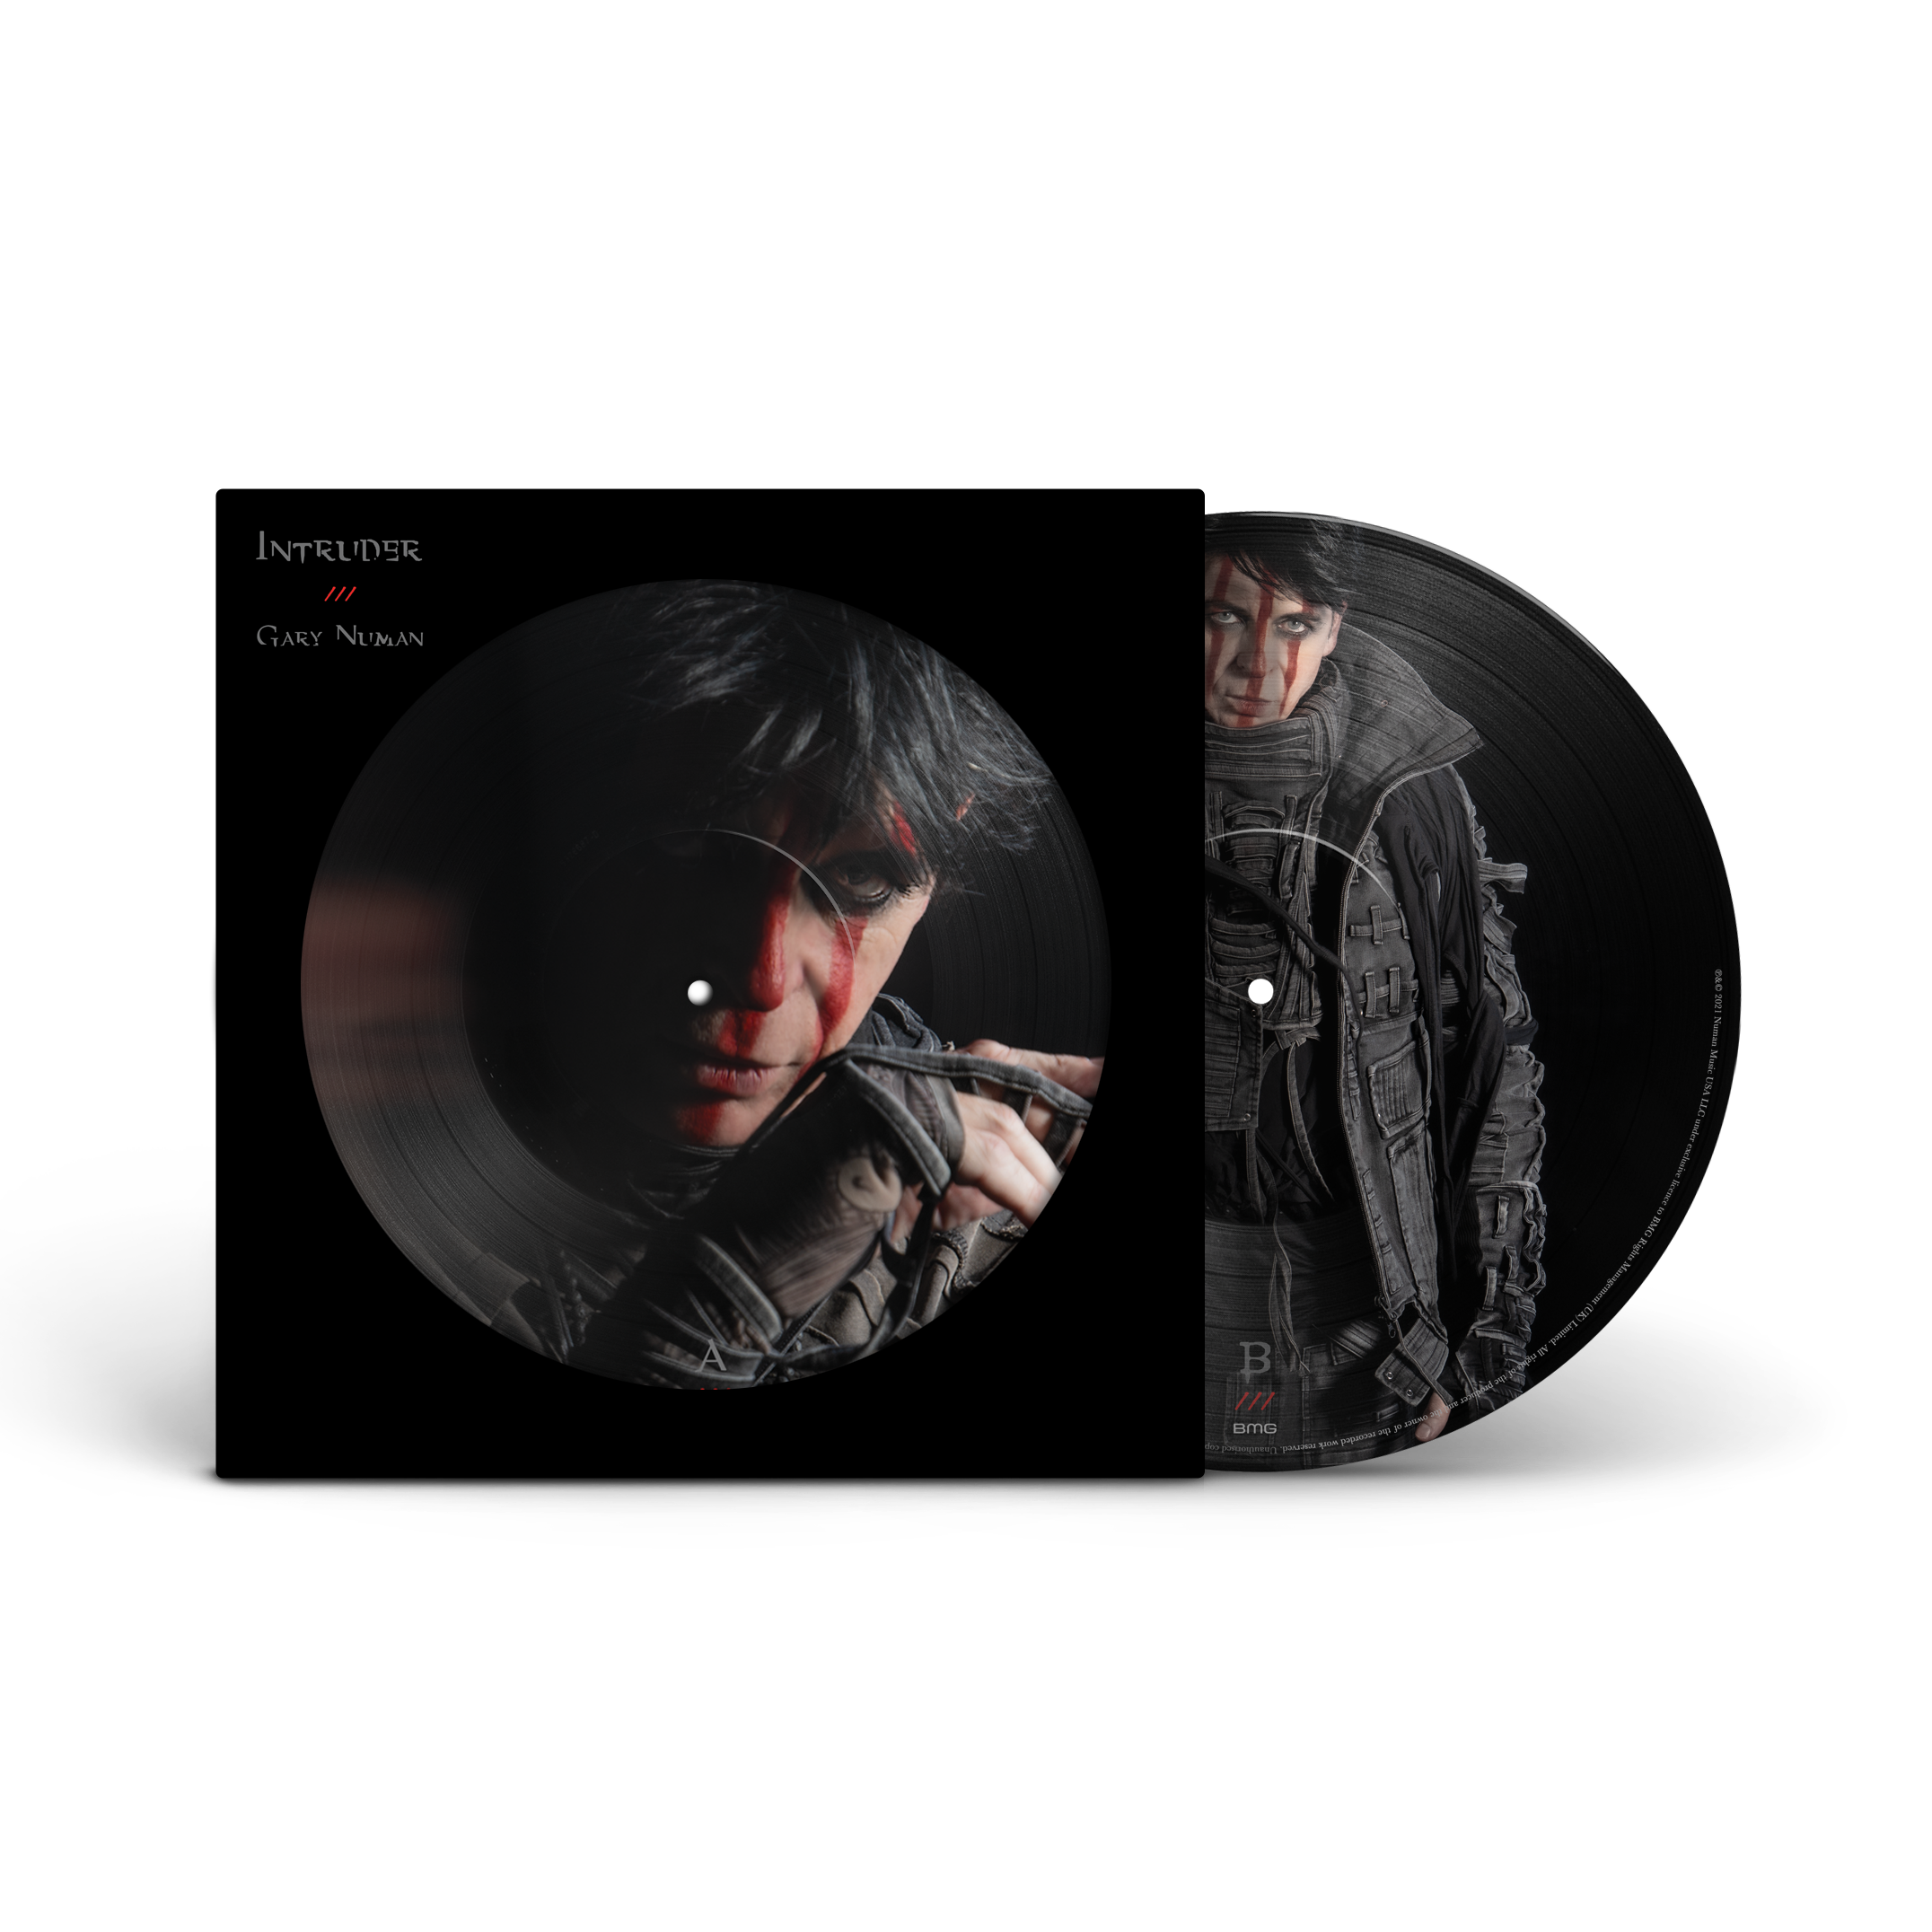 Intruder Double Picture Disc Vinyl